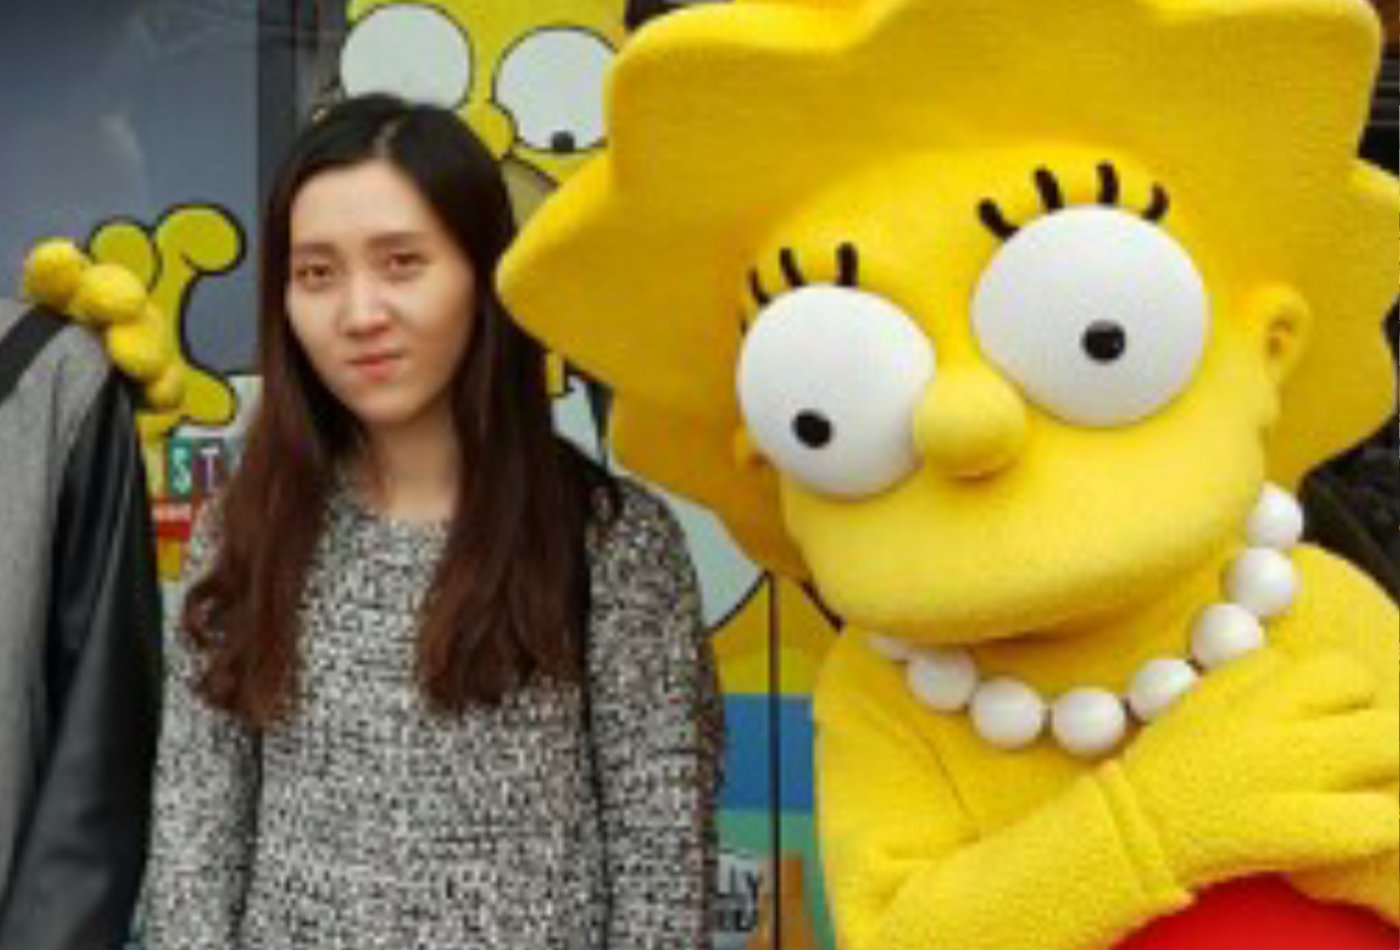 A female graduate student stands next to a bright yellow Lisa Simpson theme park character.